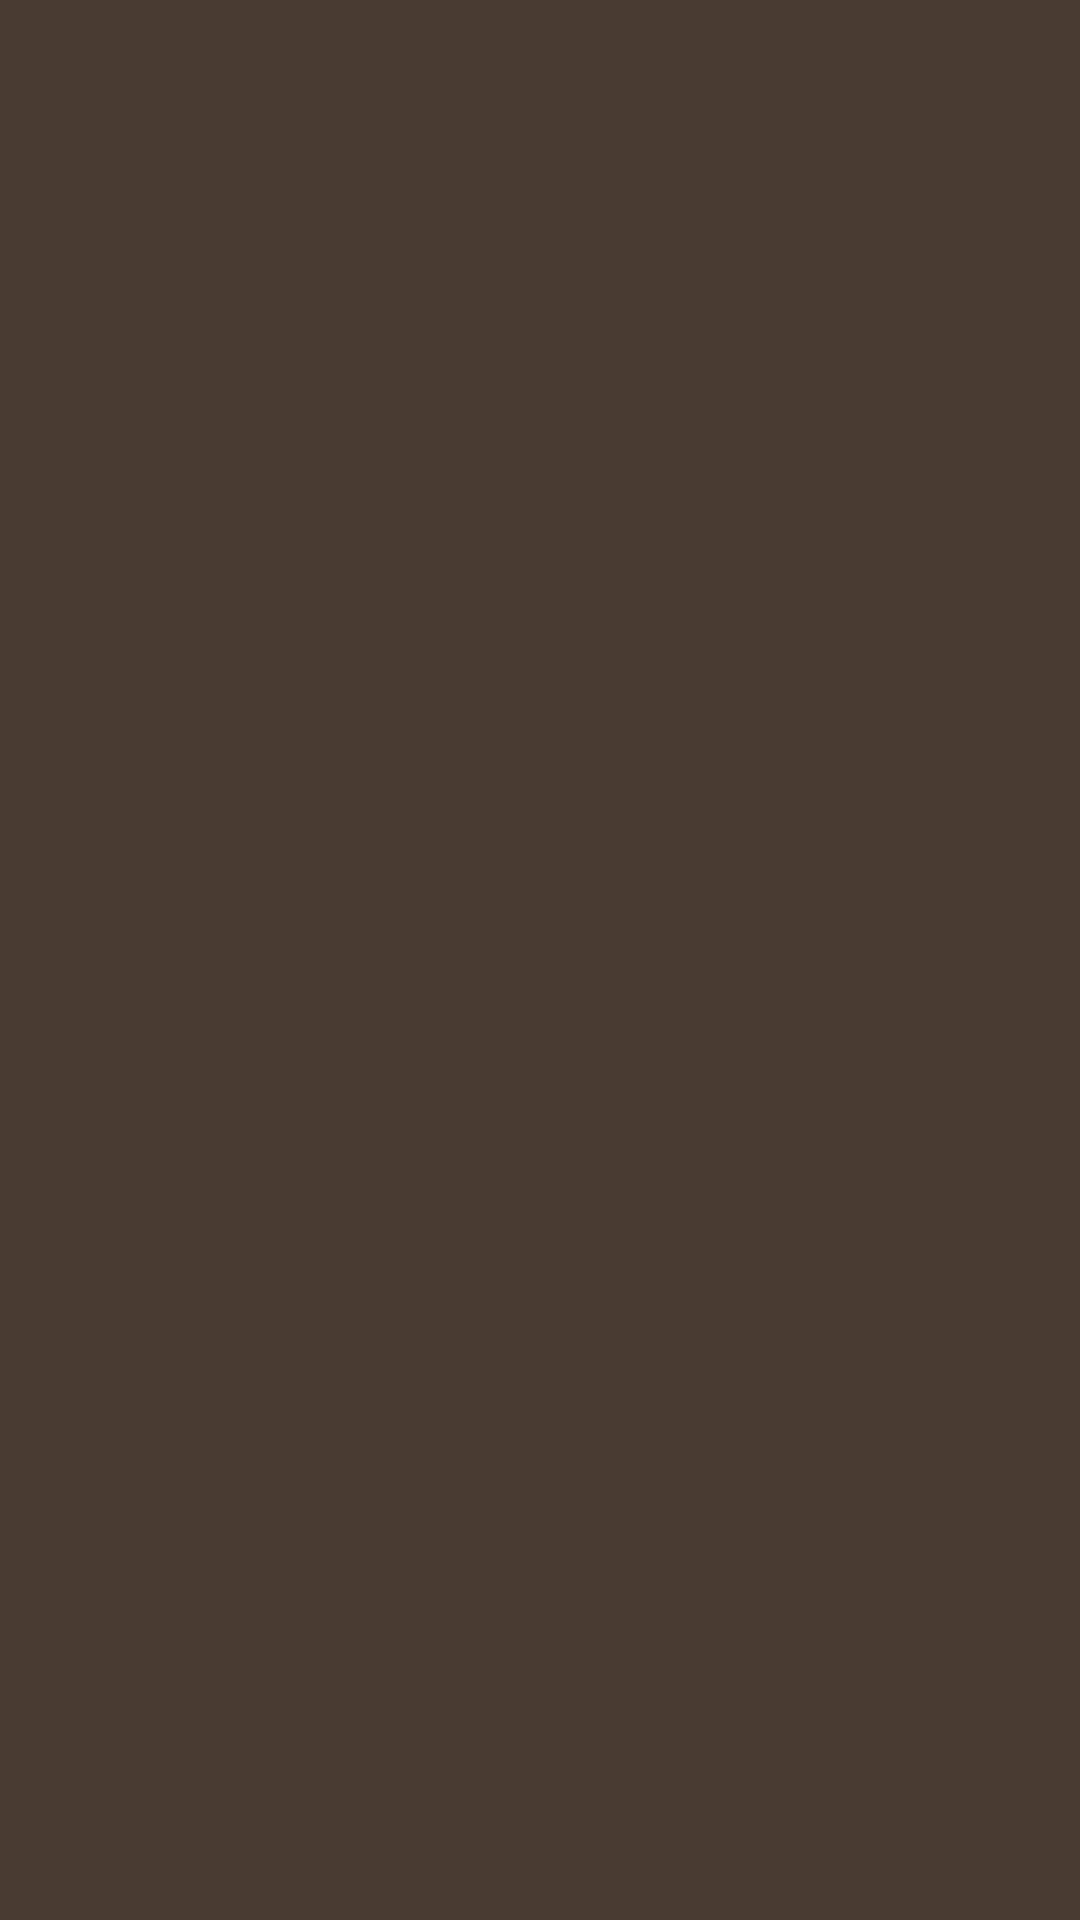 1080x1920 Dark Taupe Solid Color Background